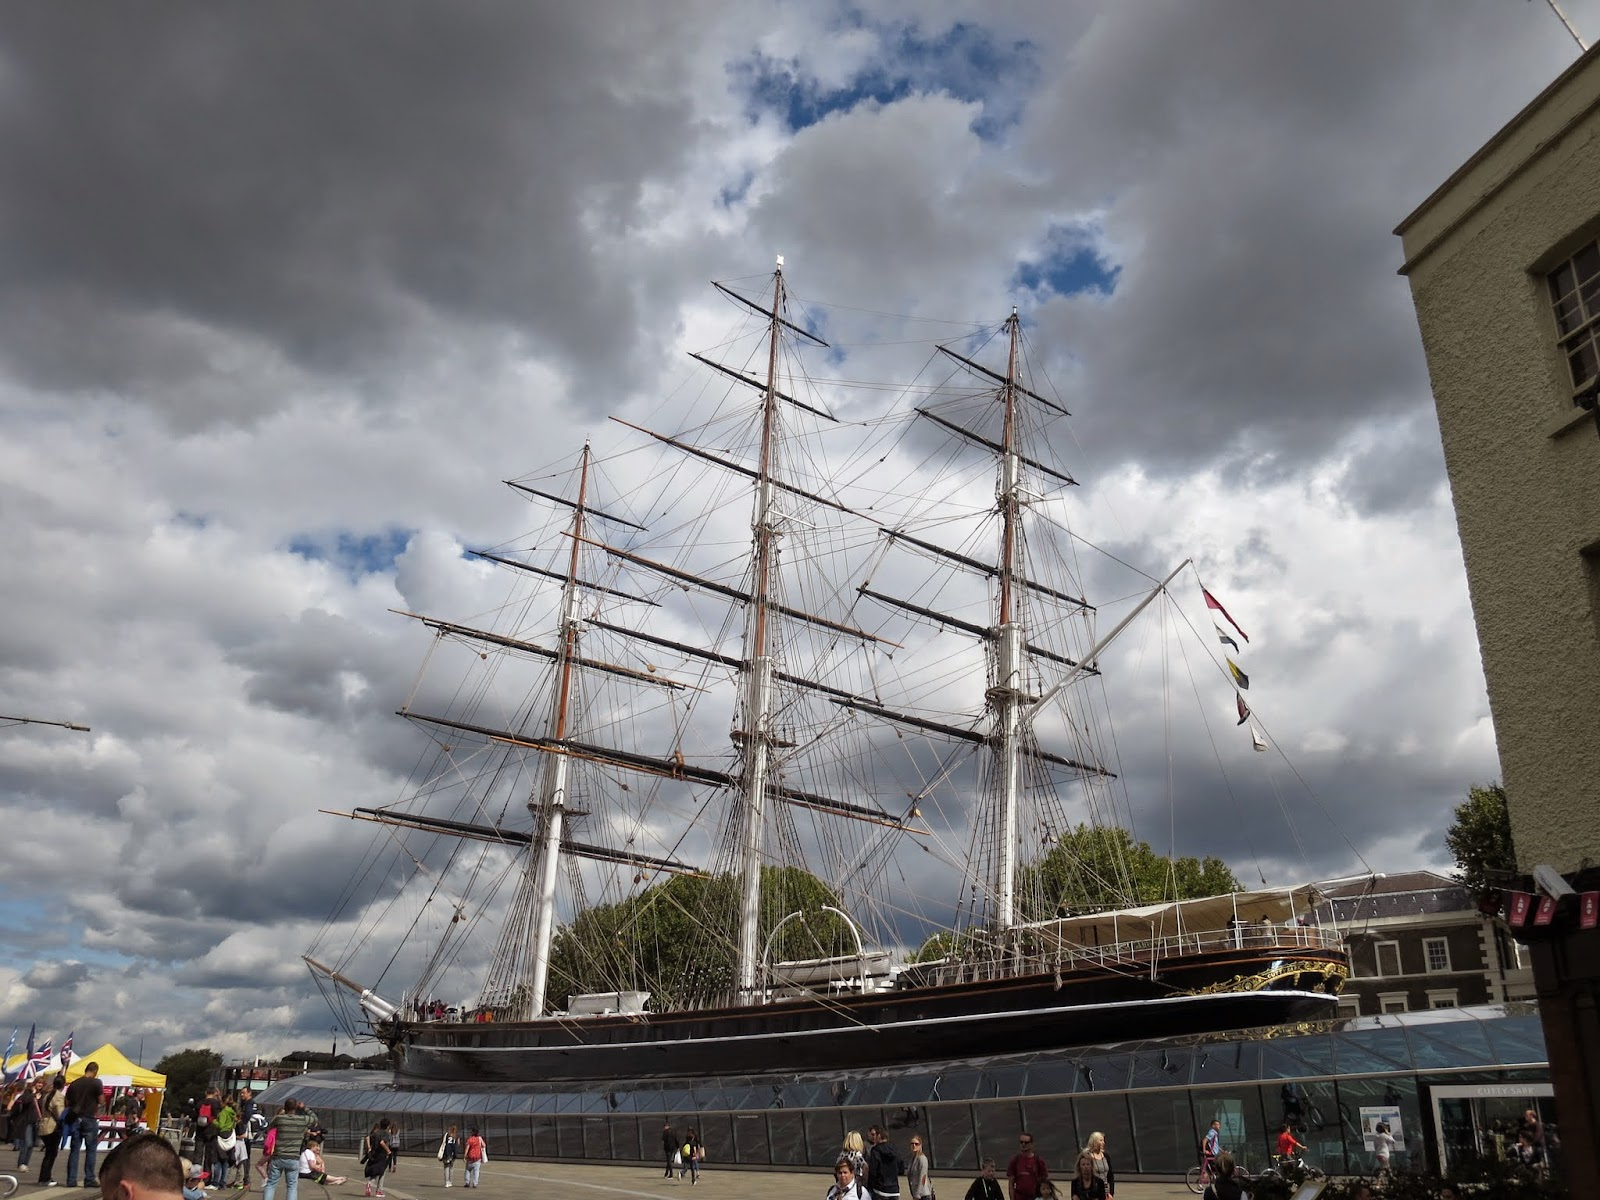 Maritime Greenwich Day Trip: The Cutty Sark